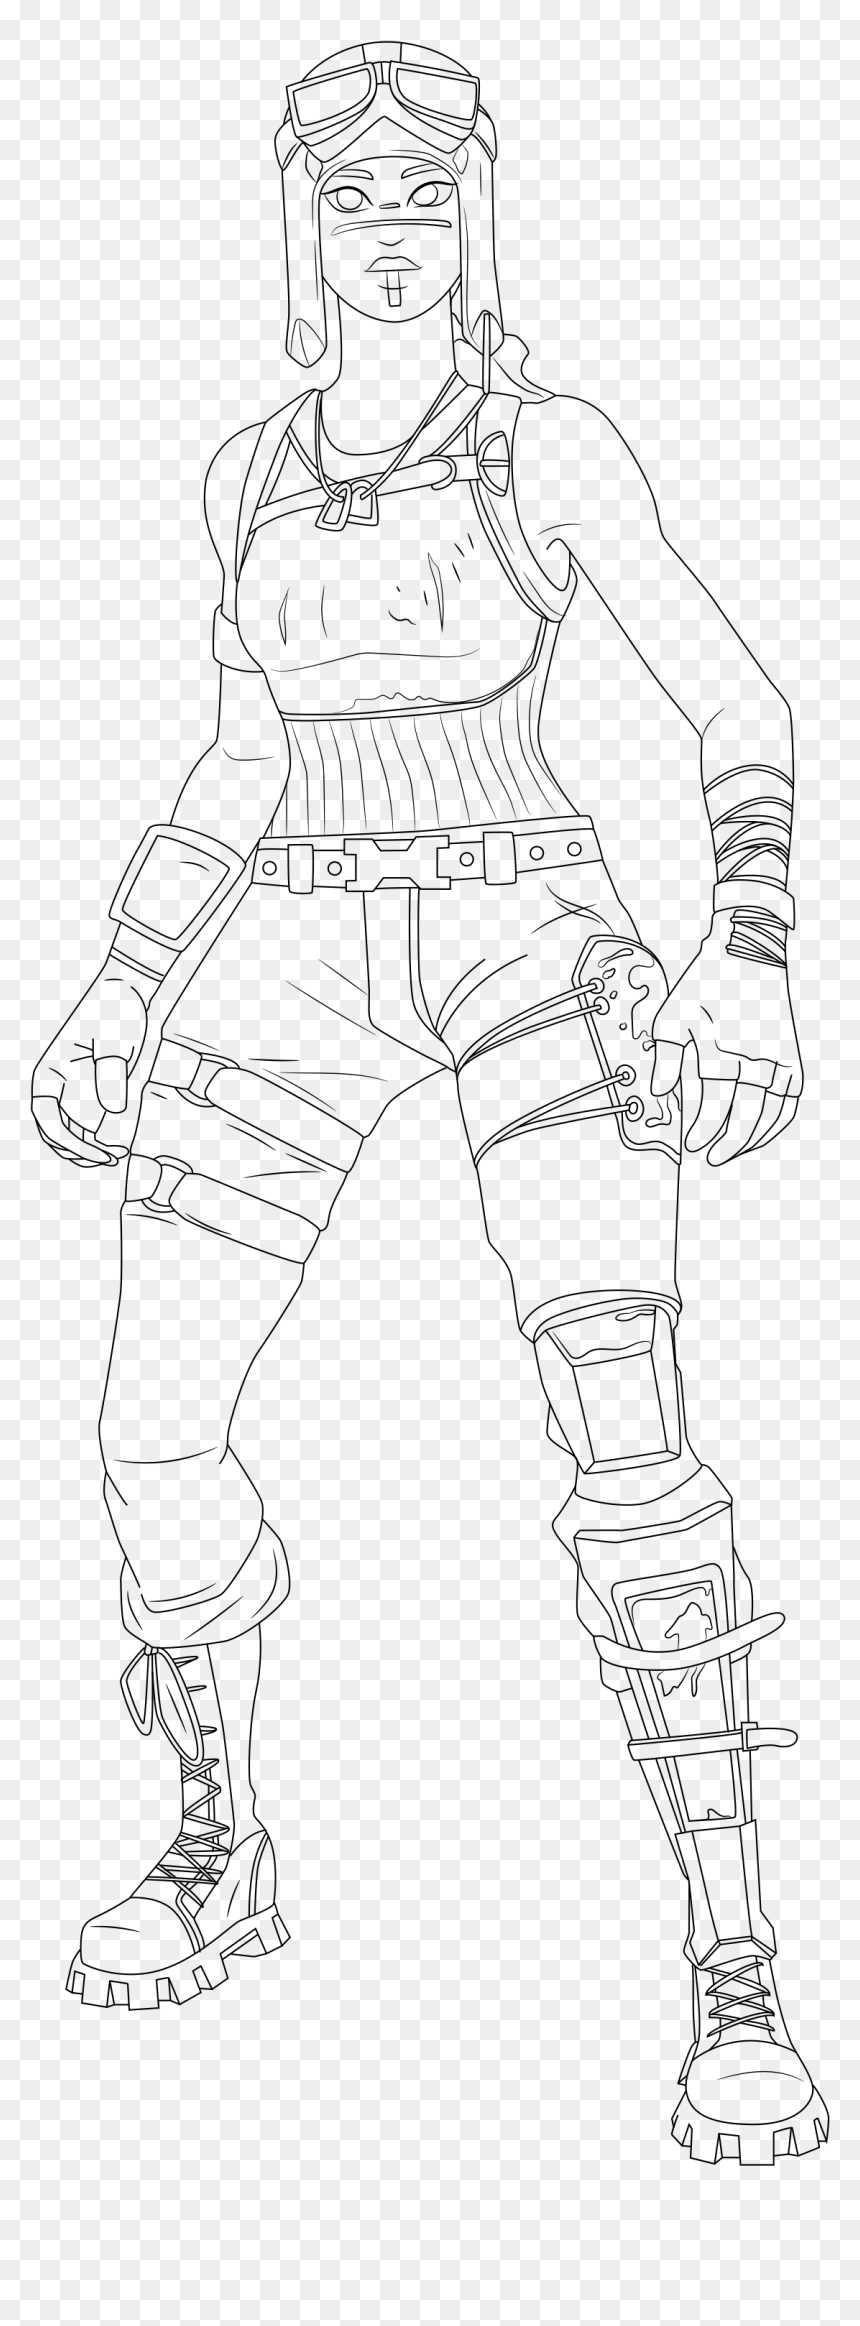 Fortnite Coloring Pages Tons Of Skins Nexus At Raiders Fortnite Skins Coloring Pages Hd Png Download 1139x2994 Png Dlf Pt